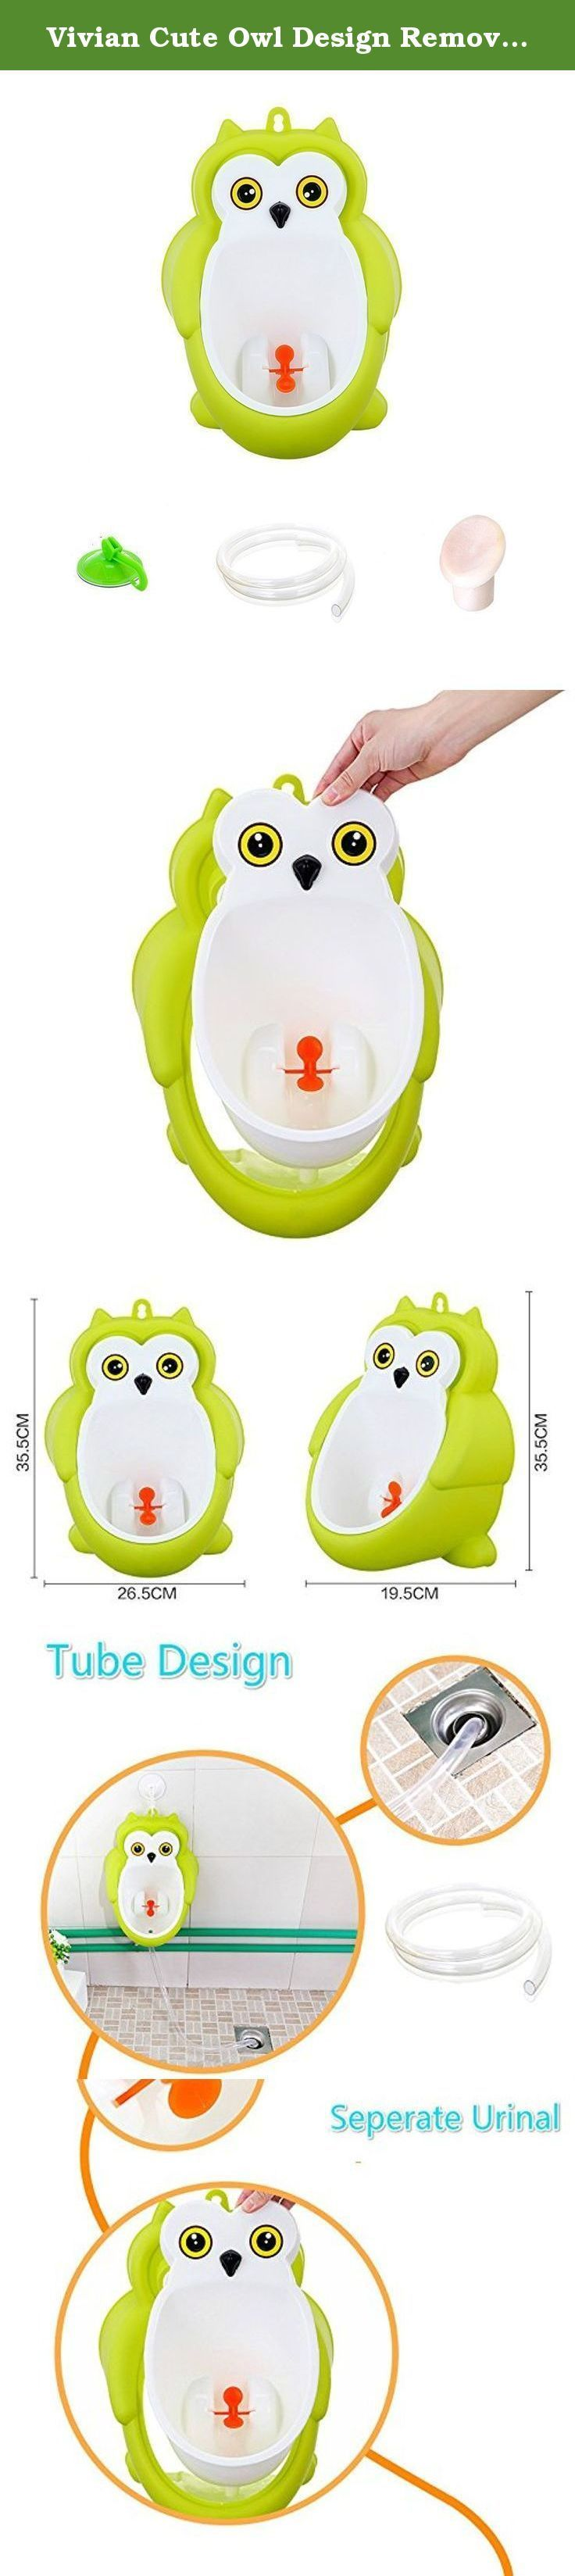 Vivian Cute Owl Design Removable Toilet Training Kids Urinal Early Learning Boys Pee Trainer (Green). Vivian Cute Owl Design Removable Toilet Training Kids Urinal Early Learning Boys Pee Trainer Features: Super large separable toilet bowl,easy to clean Matched water pipe and special bottom water plug ensures no spilling Cute appearance design and interesting aiming target appeals your boys well Perfect for Toilet Training for Boys between the ages 1 and 10 Size: 26.5*19.5*35.5cm Package...